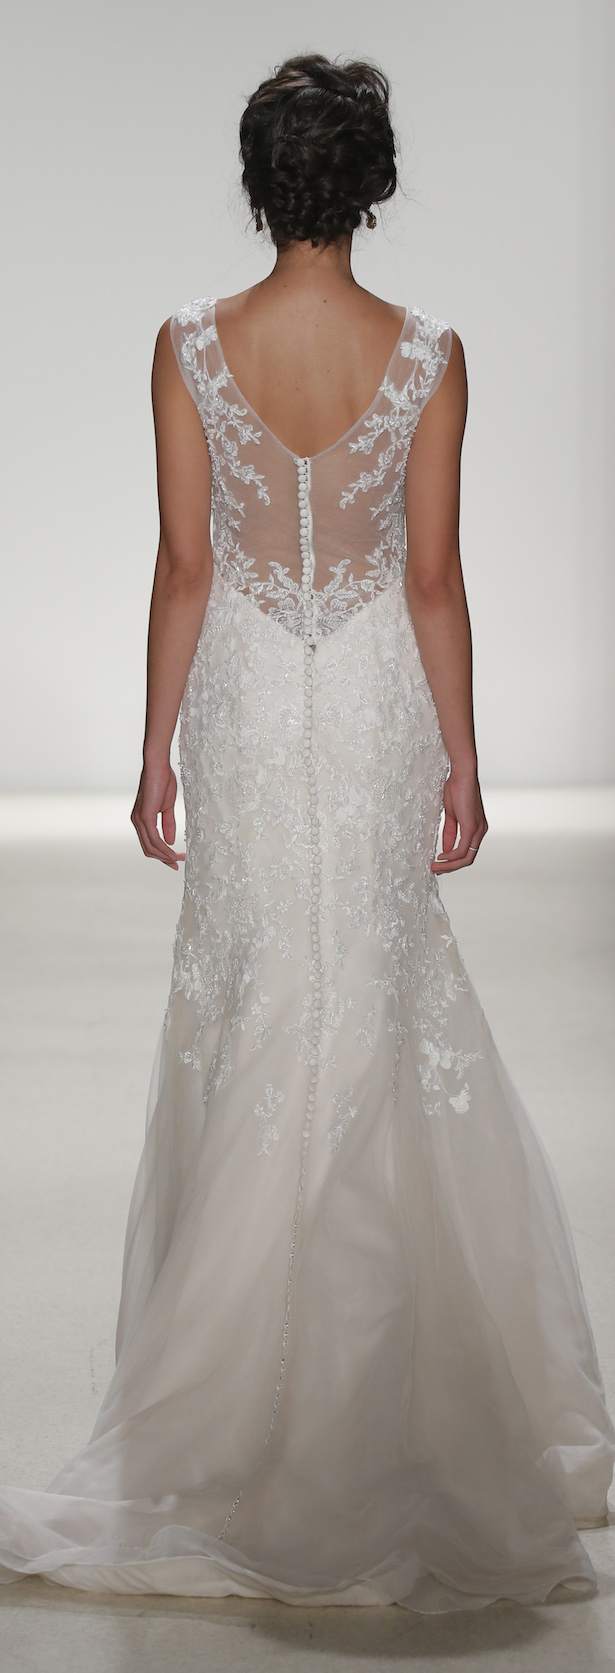 Wedding Dress by Kelly Faetanini Spring 2018 - JESSICA